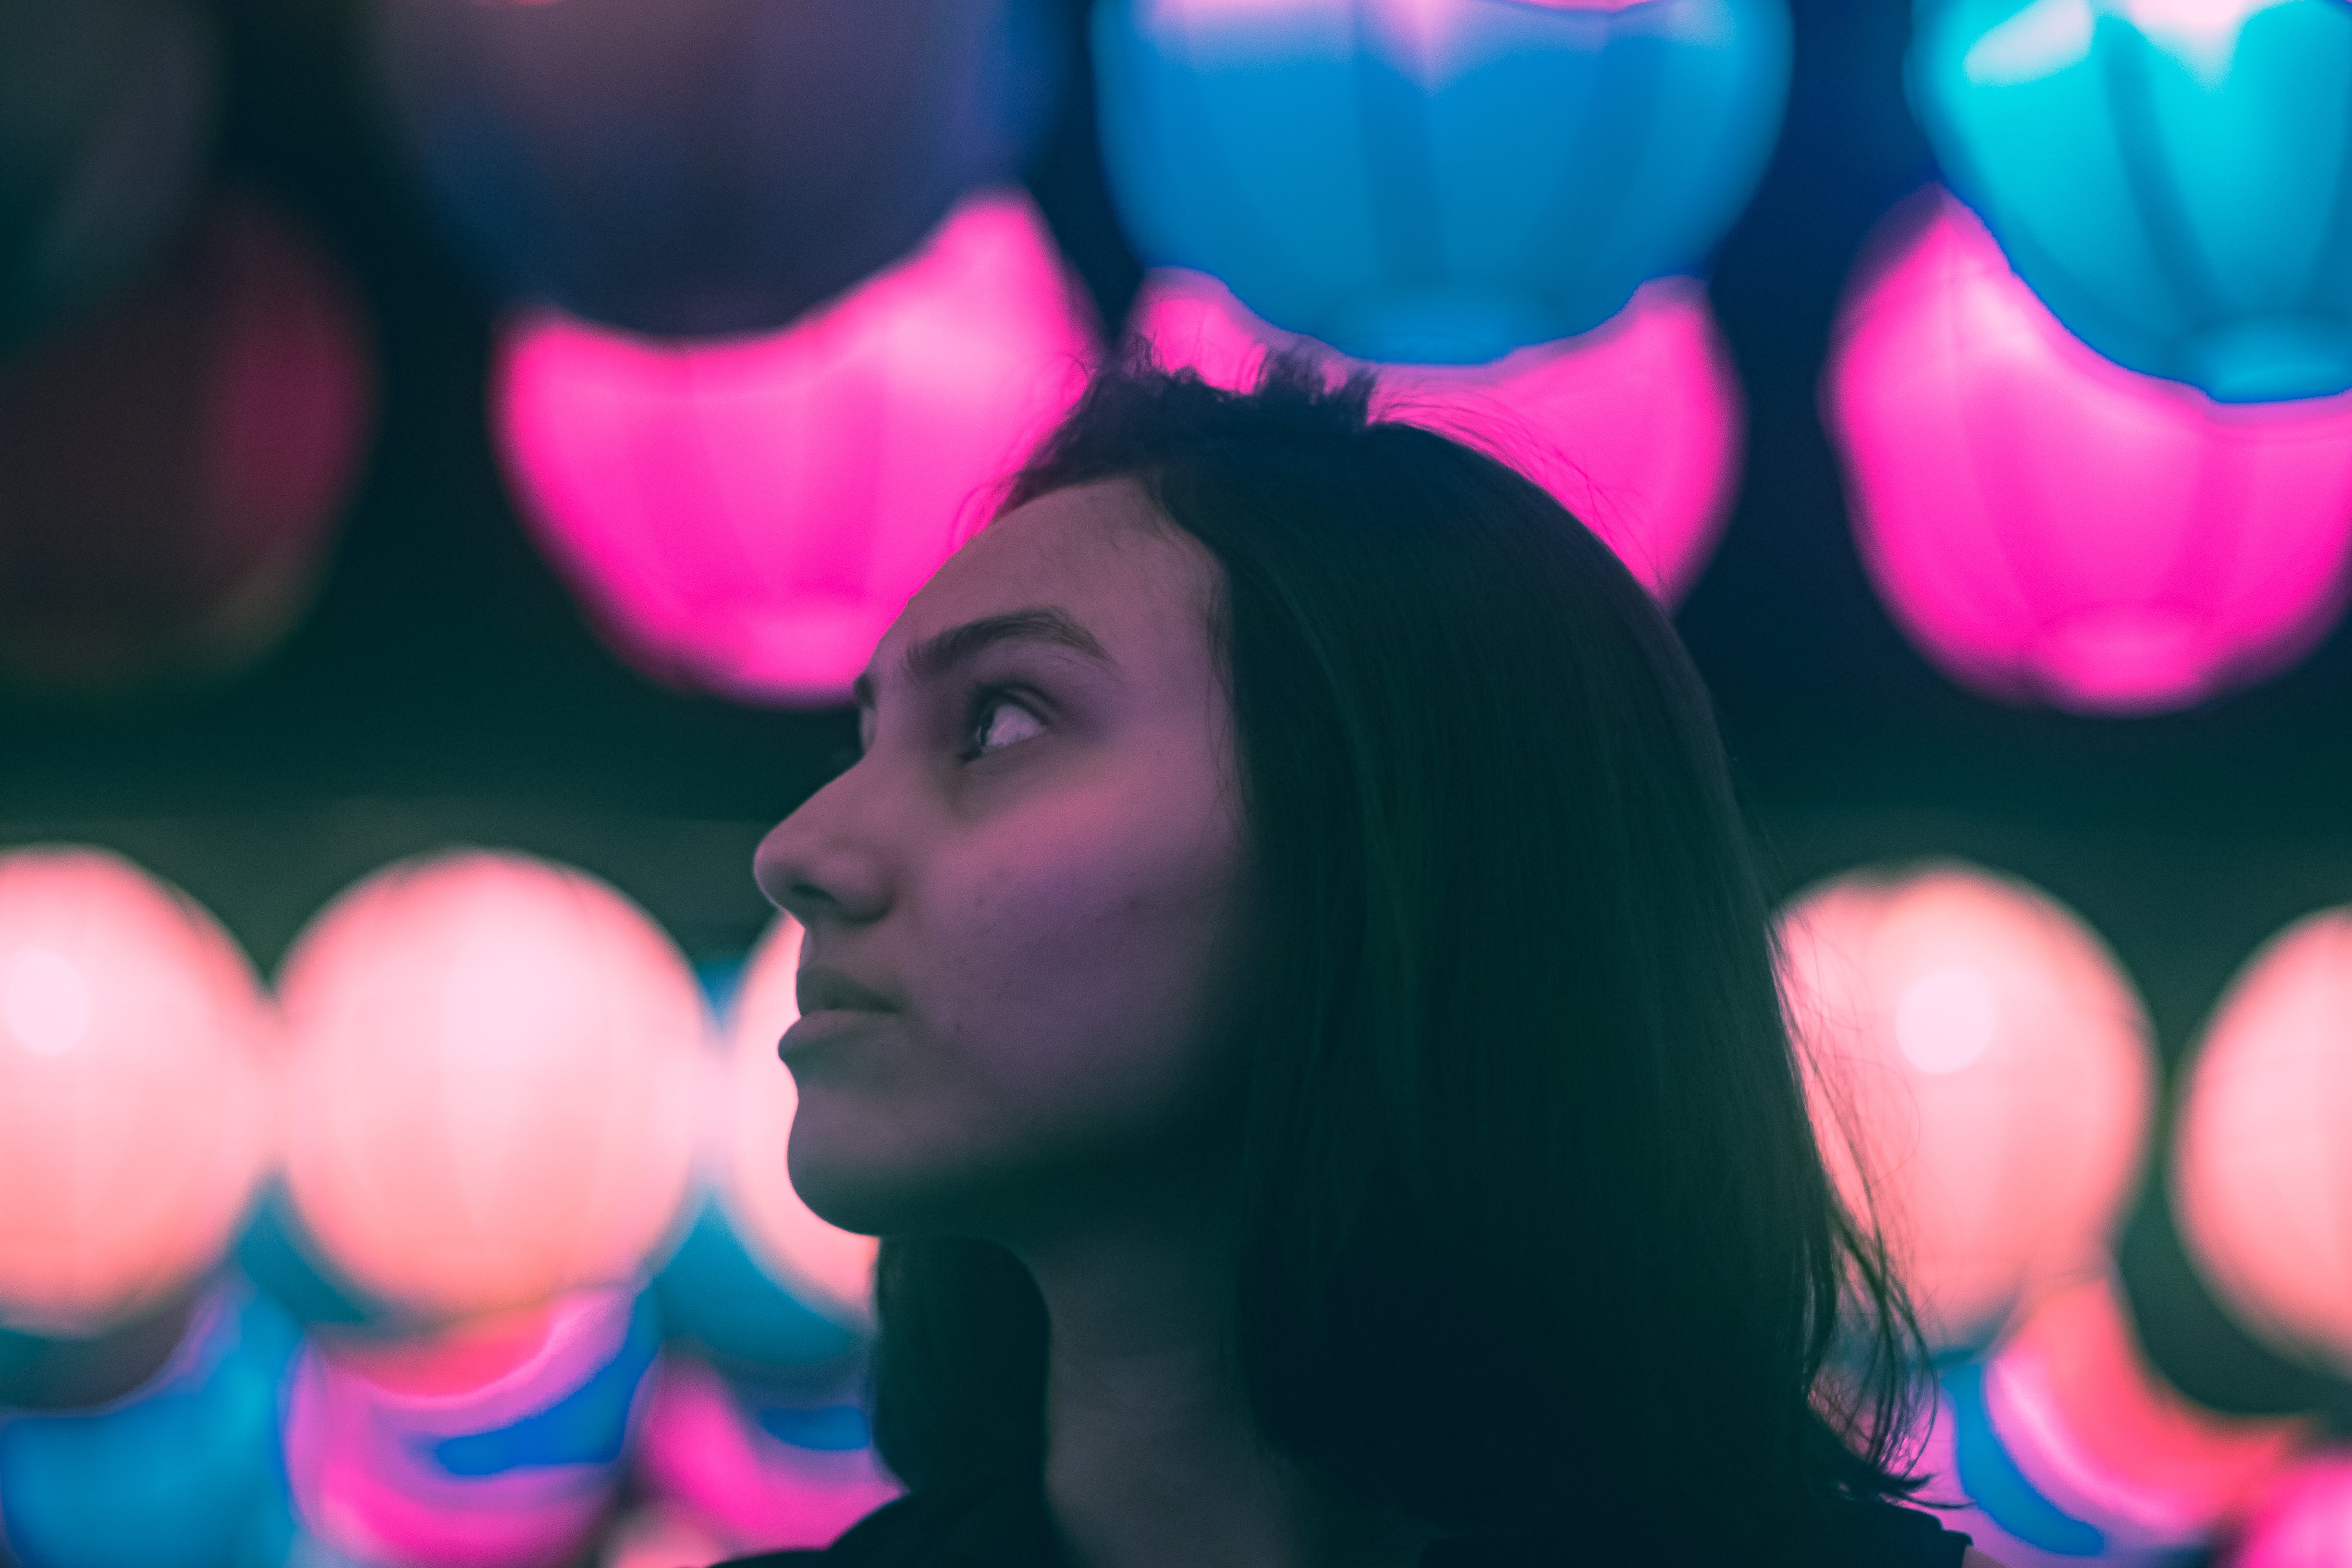 Woman in Portrait Photo With Bokeh Effect Background